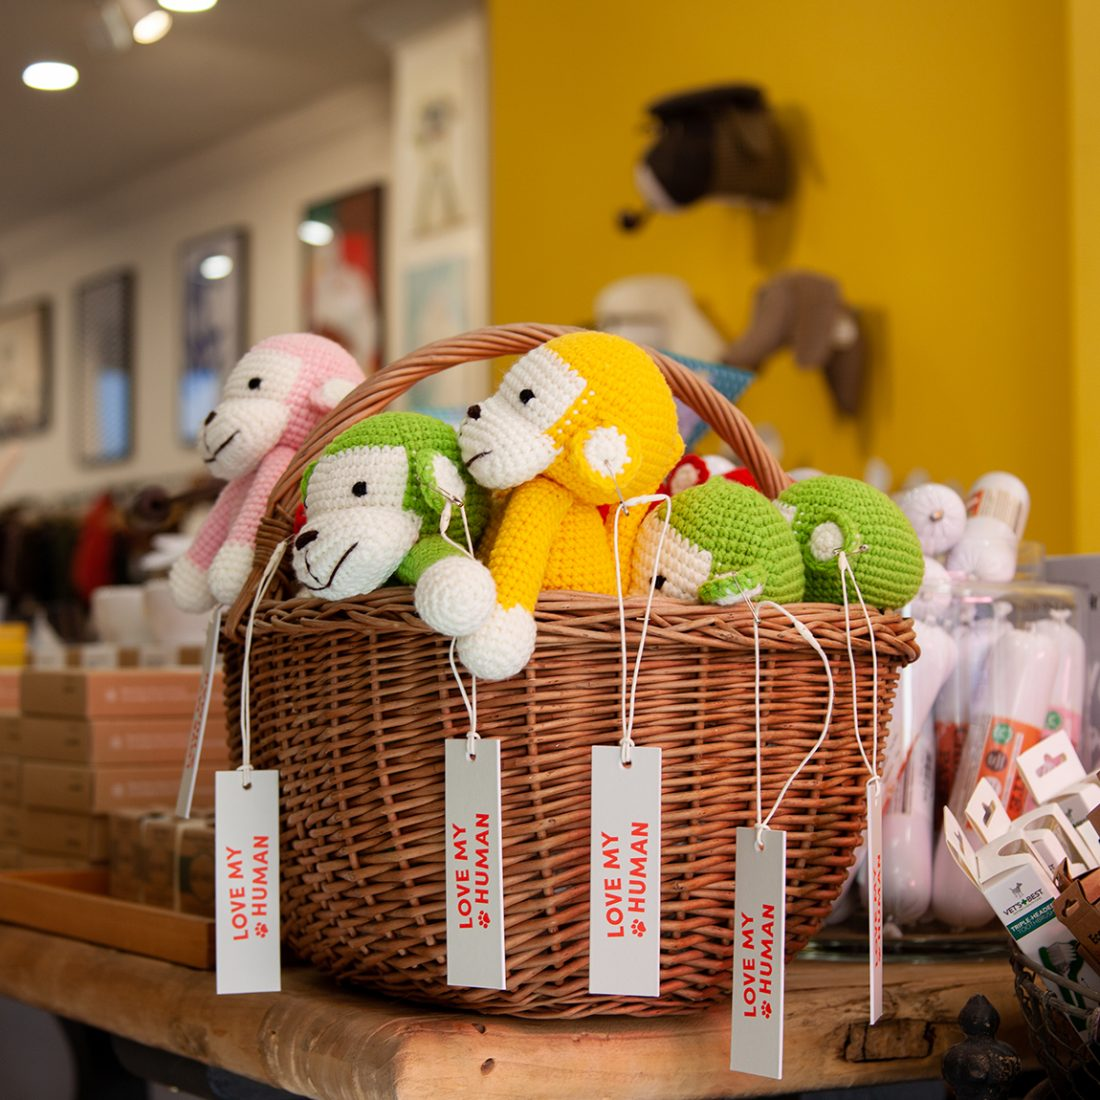 Basket of monkey themed dog toys and other dog accessories in the Love My human shop.